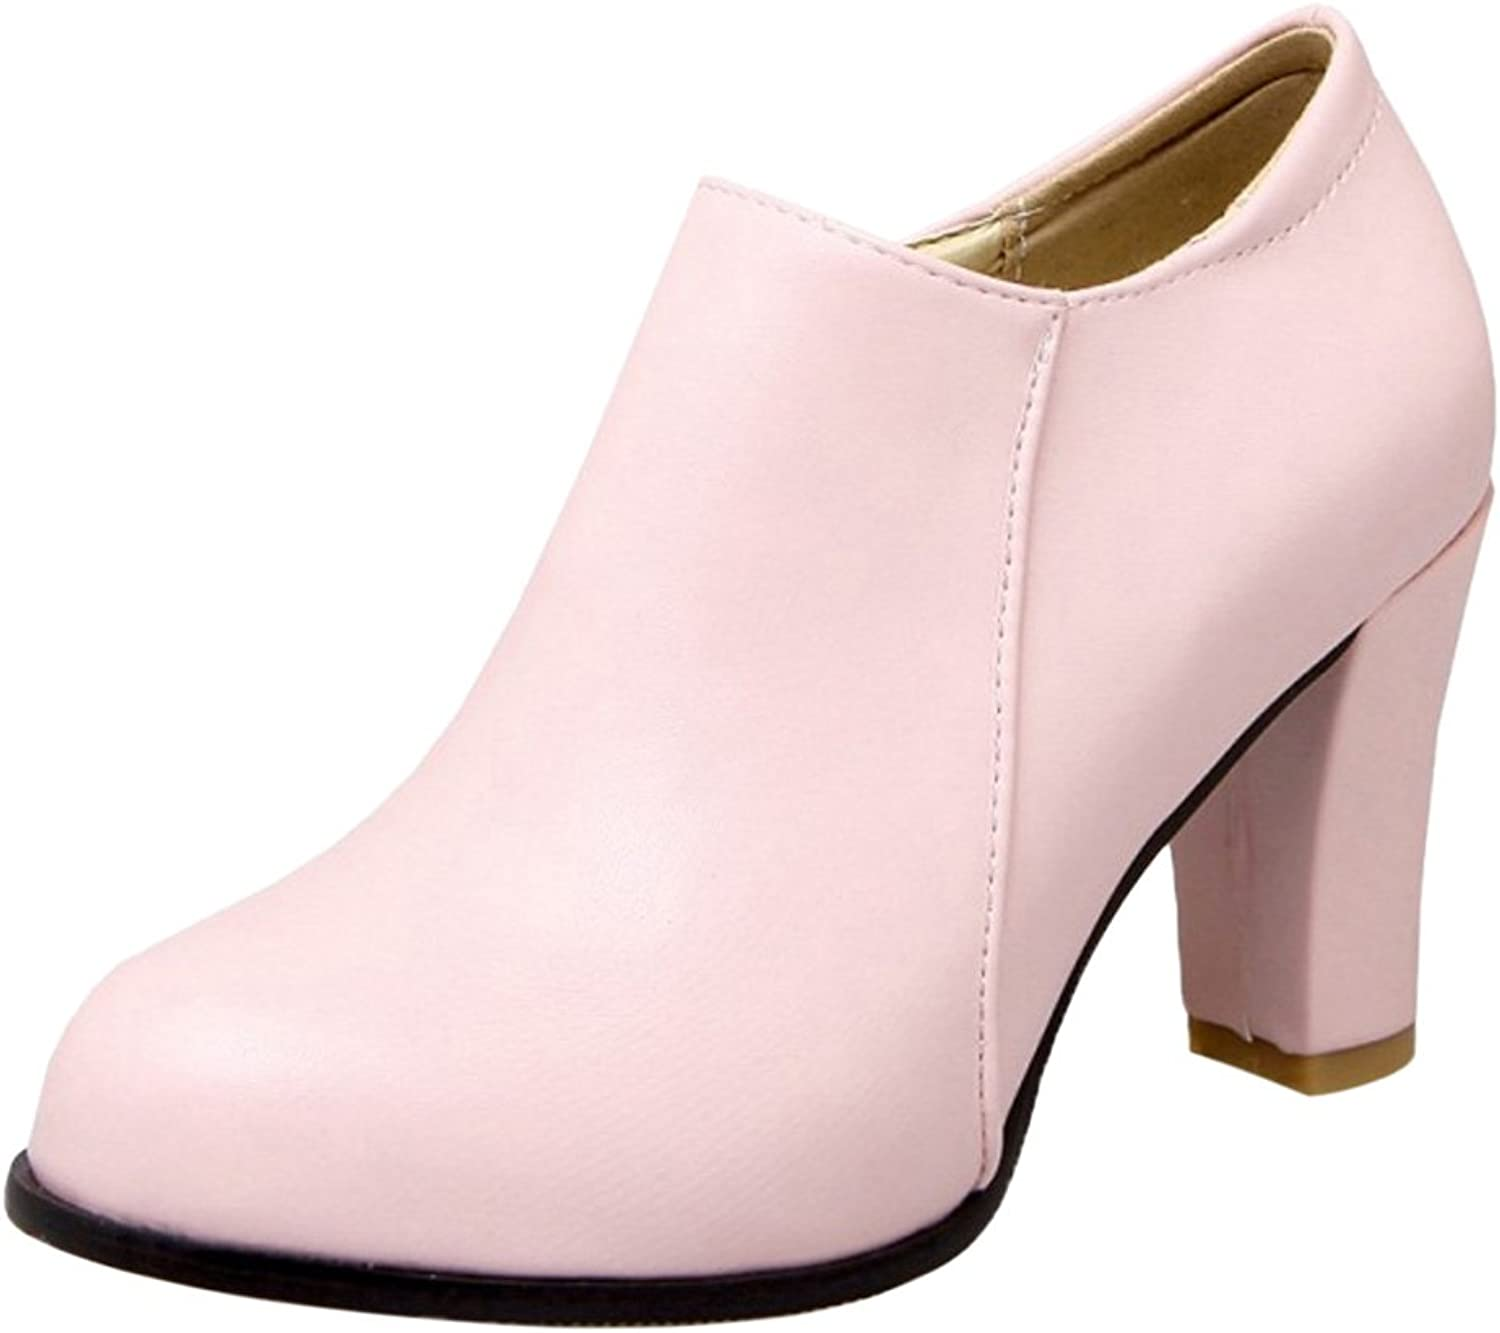 CarziCuzin Women Solid Block Heel Short Boots Round Toe Pink Size 41 Asian